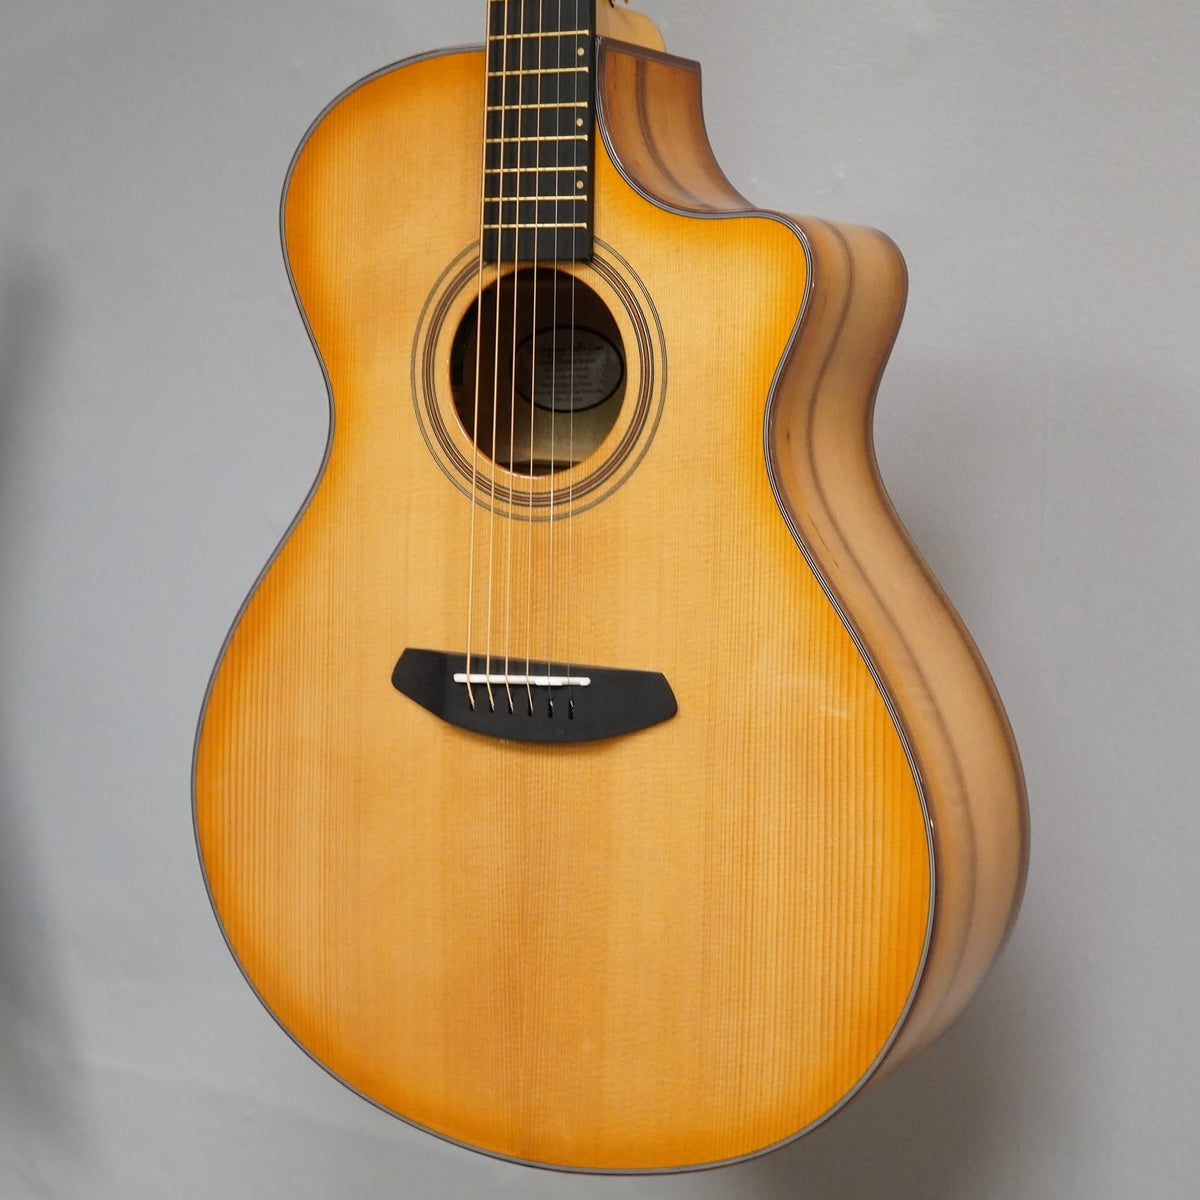 Breedlove GUITARS - ACOUSTIC GUITARS Breedlove Artista Concerto Natural Shadow CE